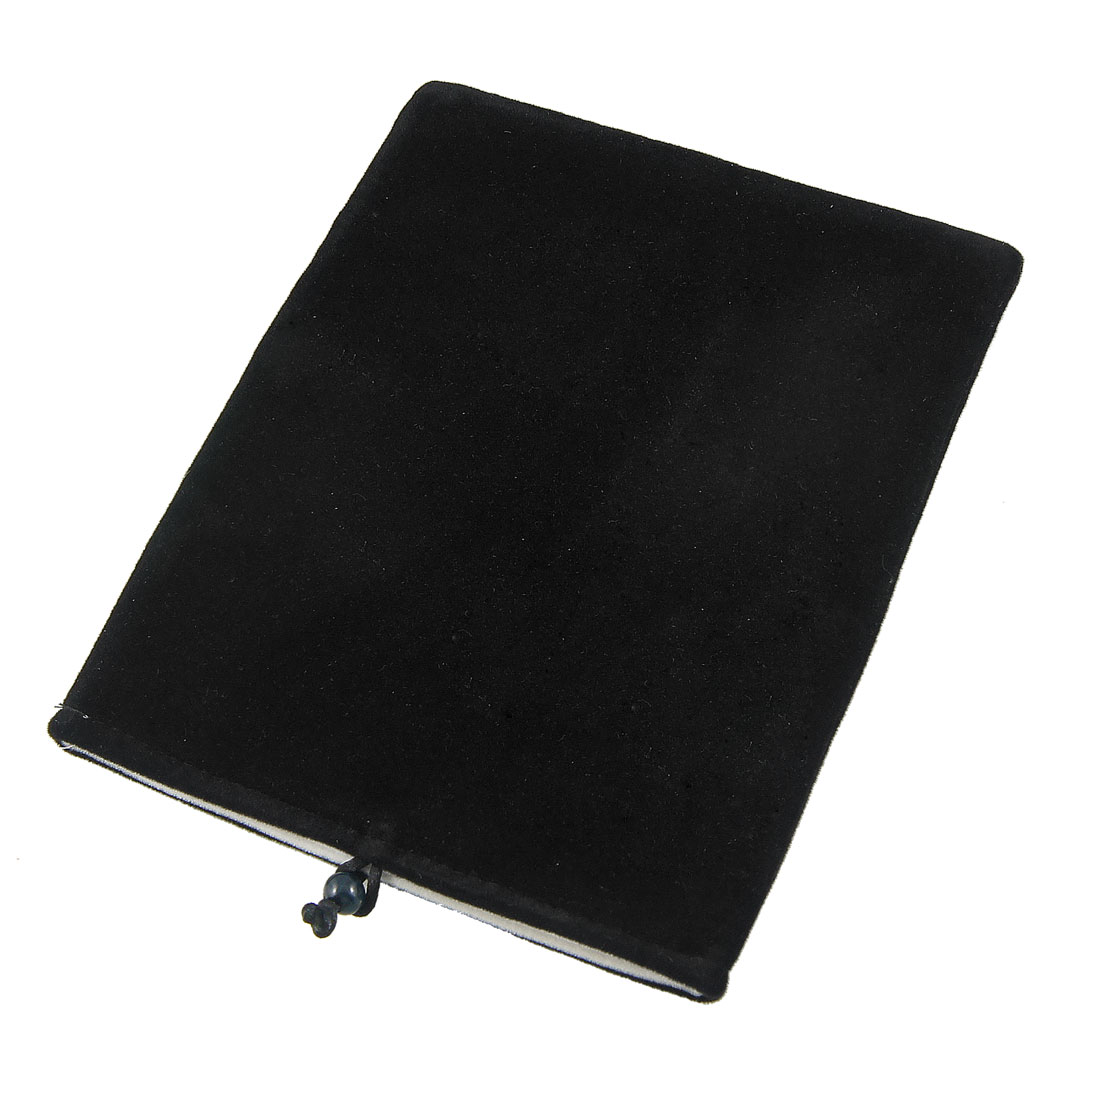 "Black Velvet Protect Pouch Bag Cover Sleeve Case for 7"" Ebook Reader Tablet"